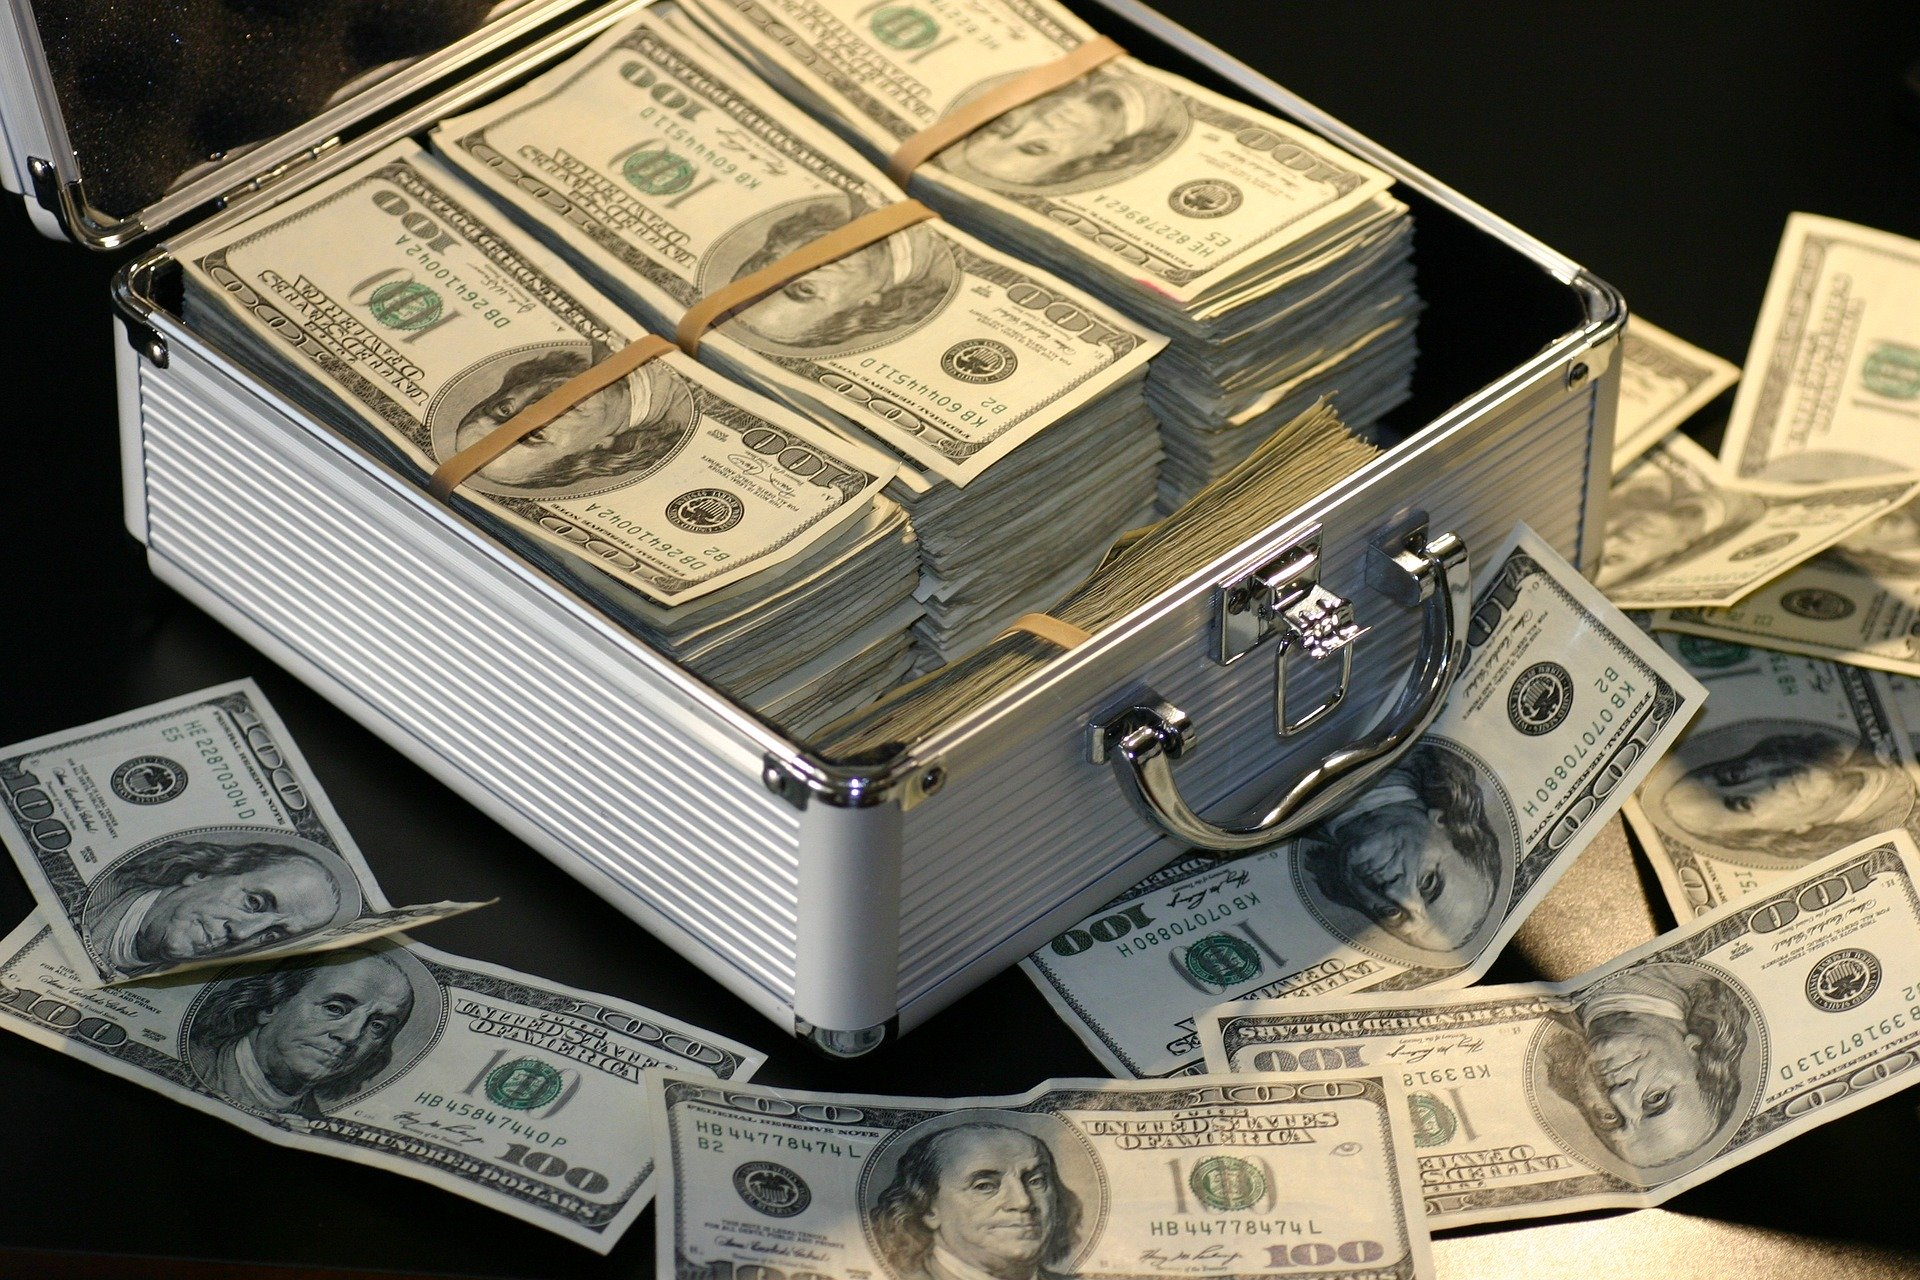 Briefcase full of $100 bills | Image by S K from Pixabay